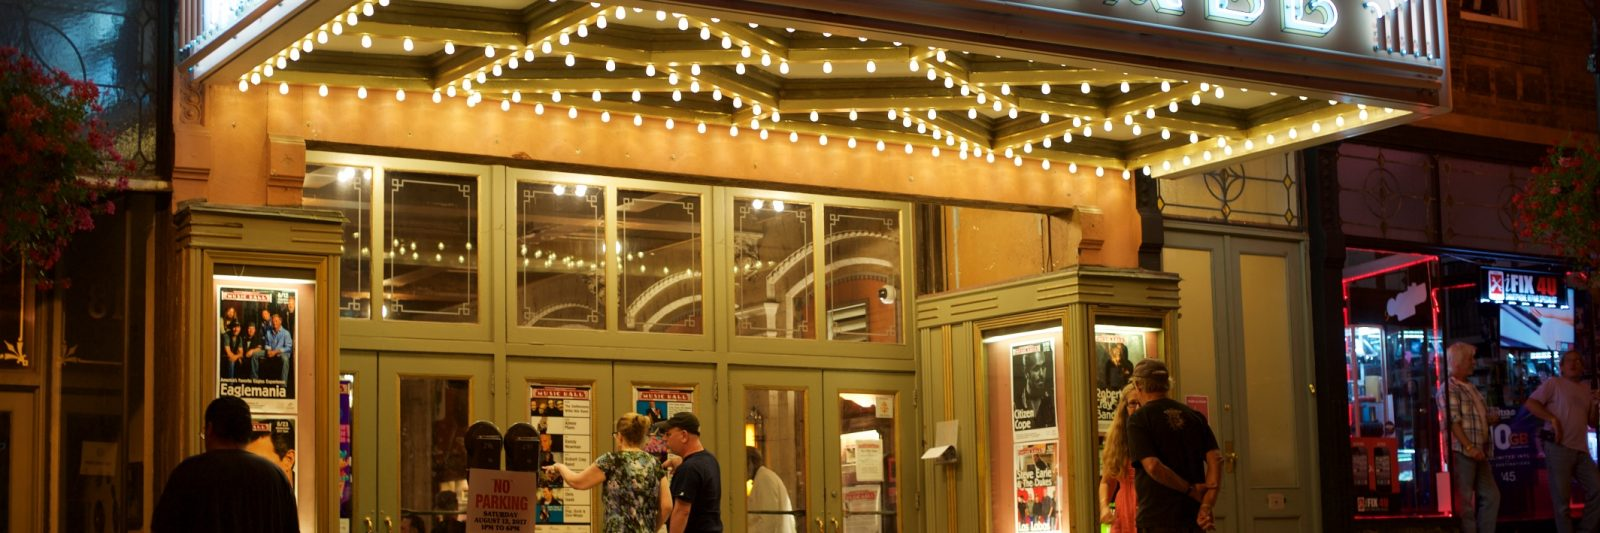 Patrons gather at night under the illuminated marquee of Tarrytown Music Hall.